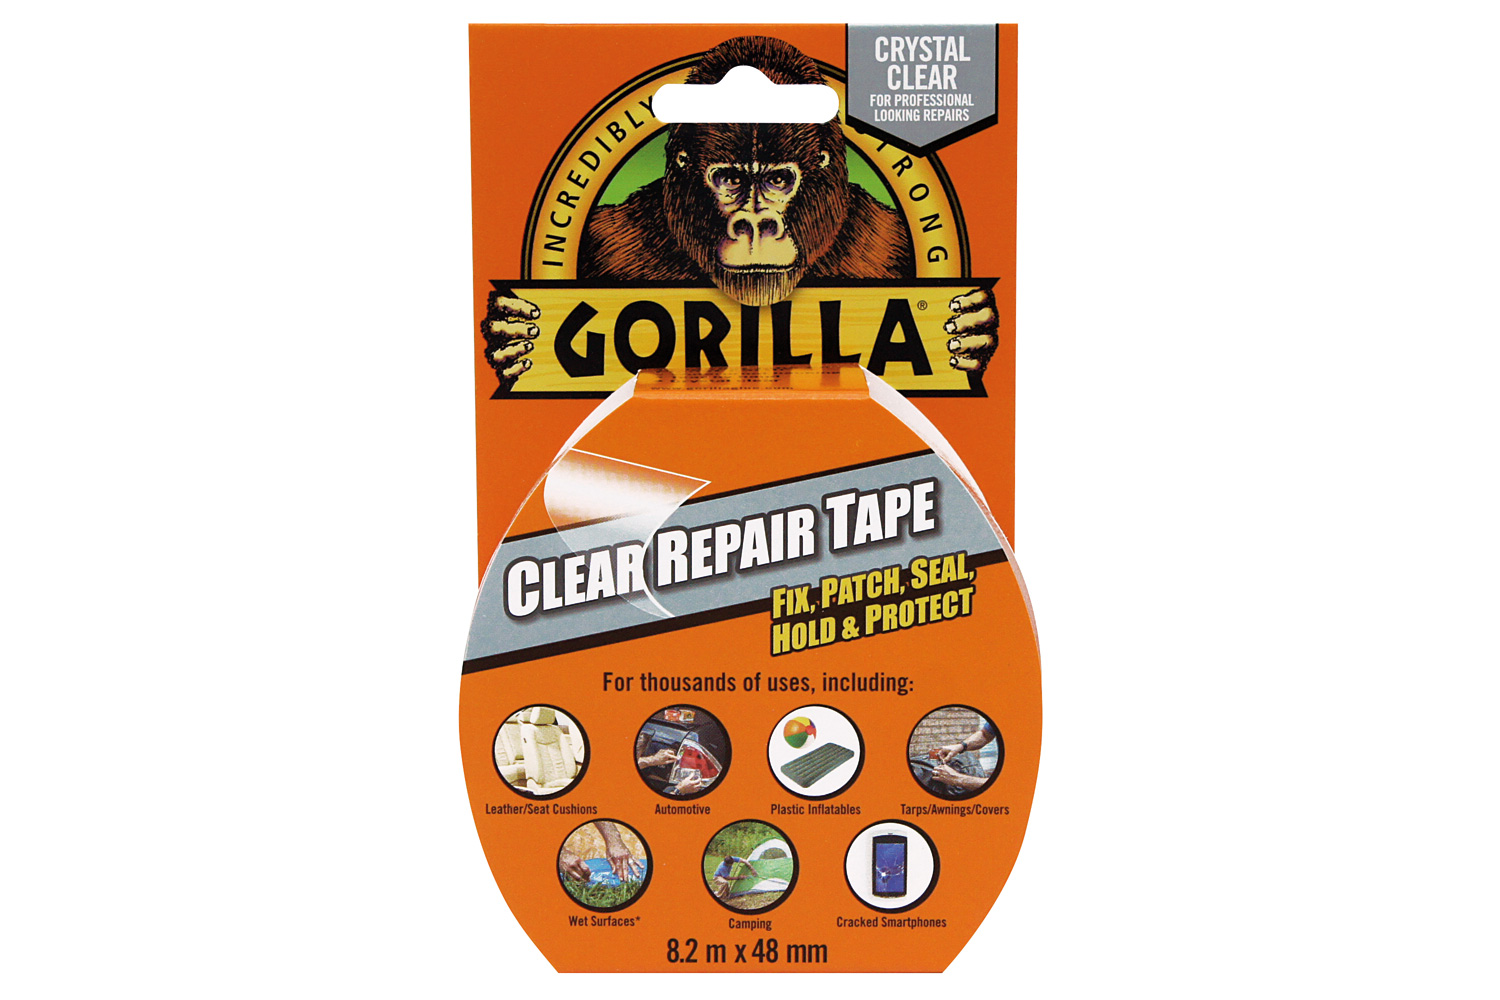 Gorilla Clear Repair Tape 8.2m